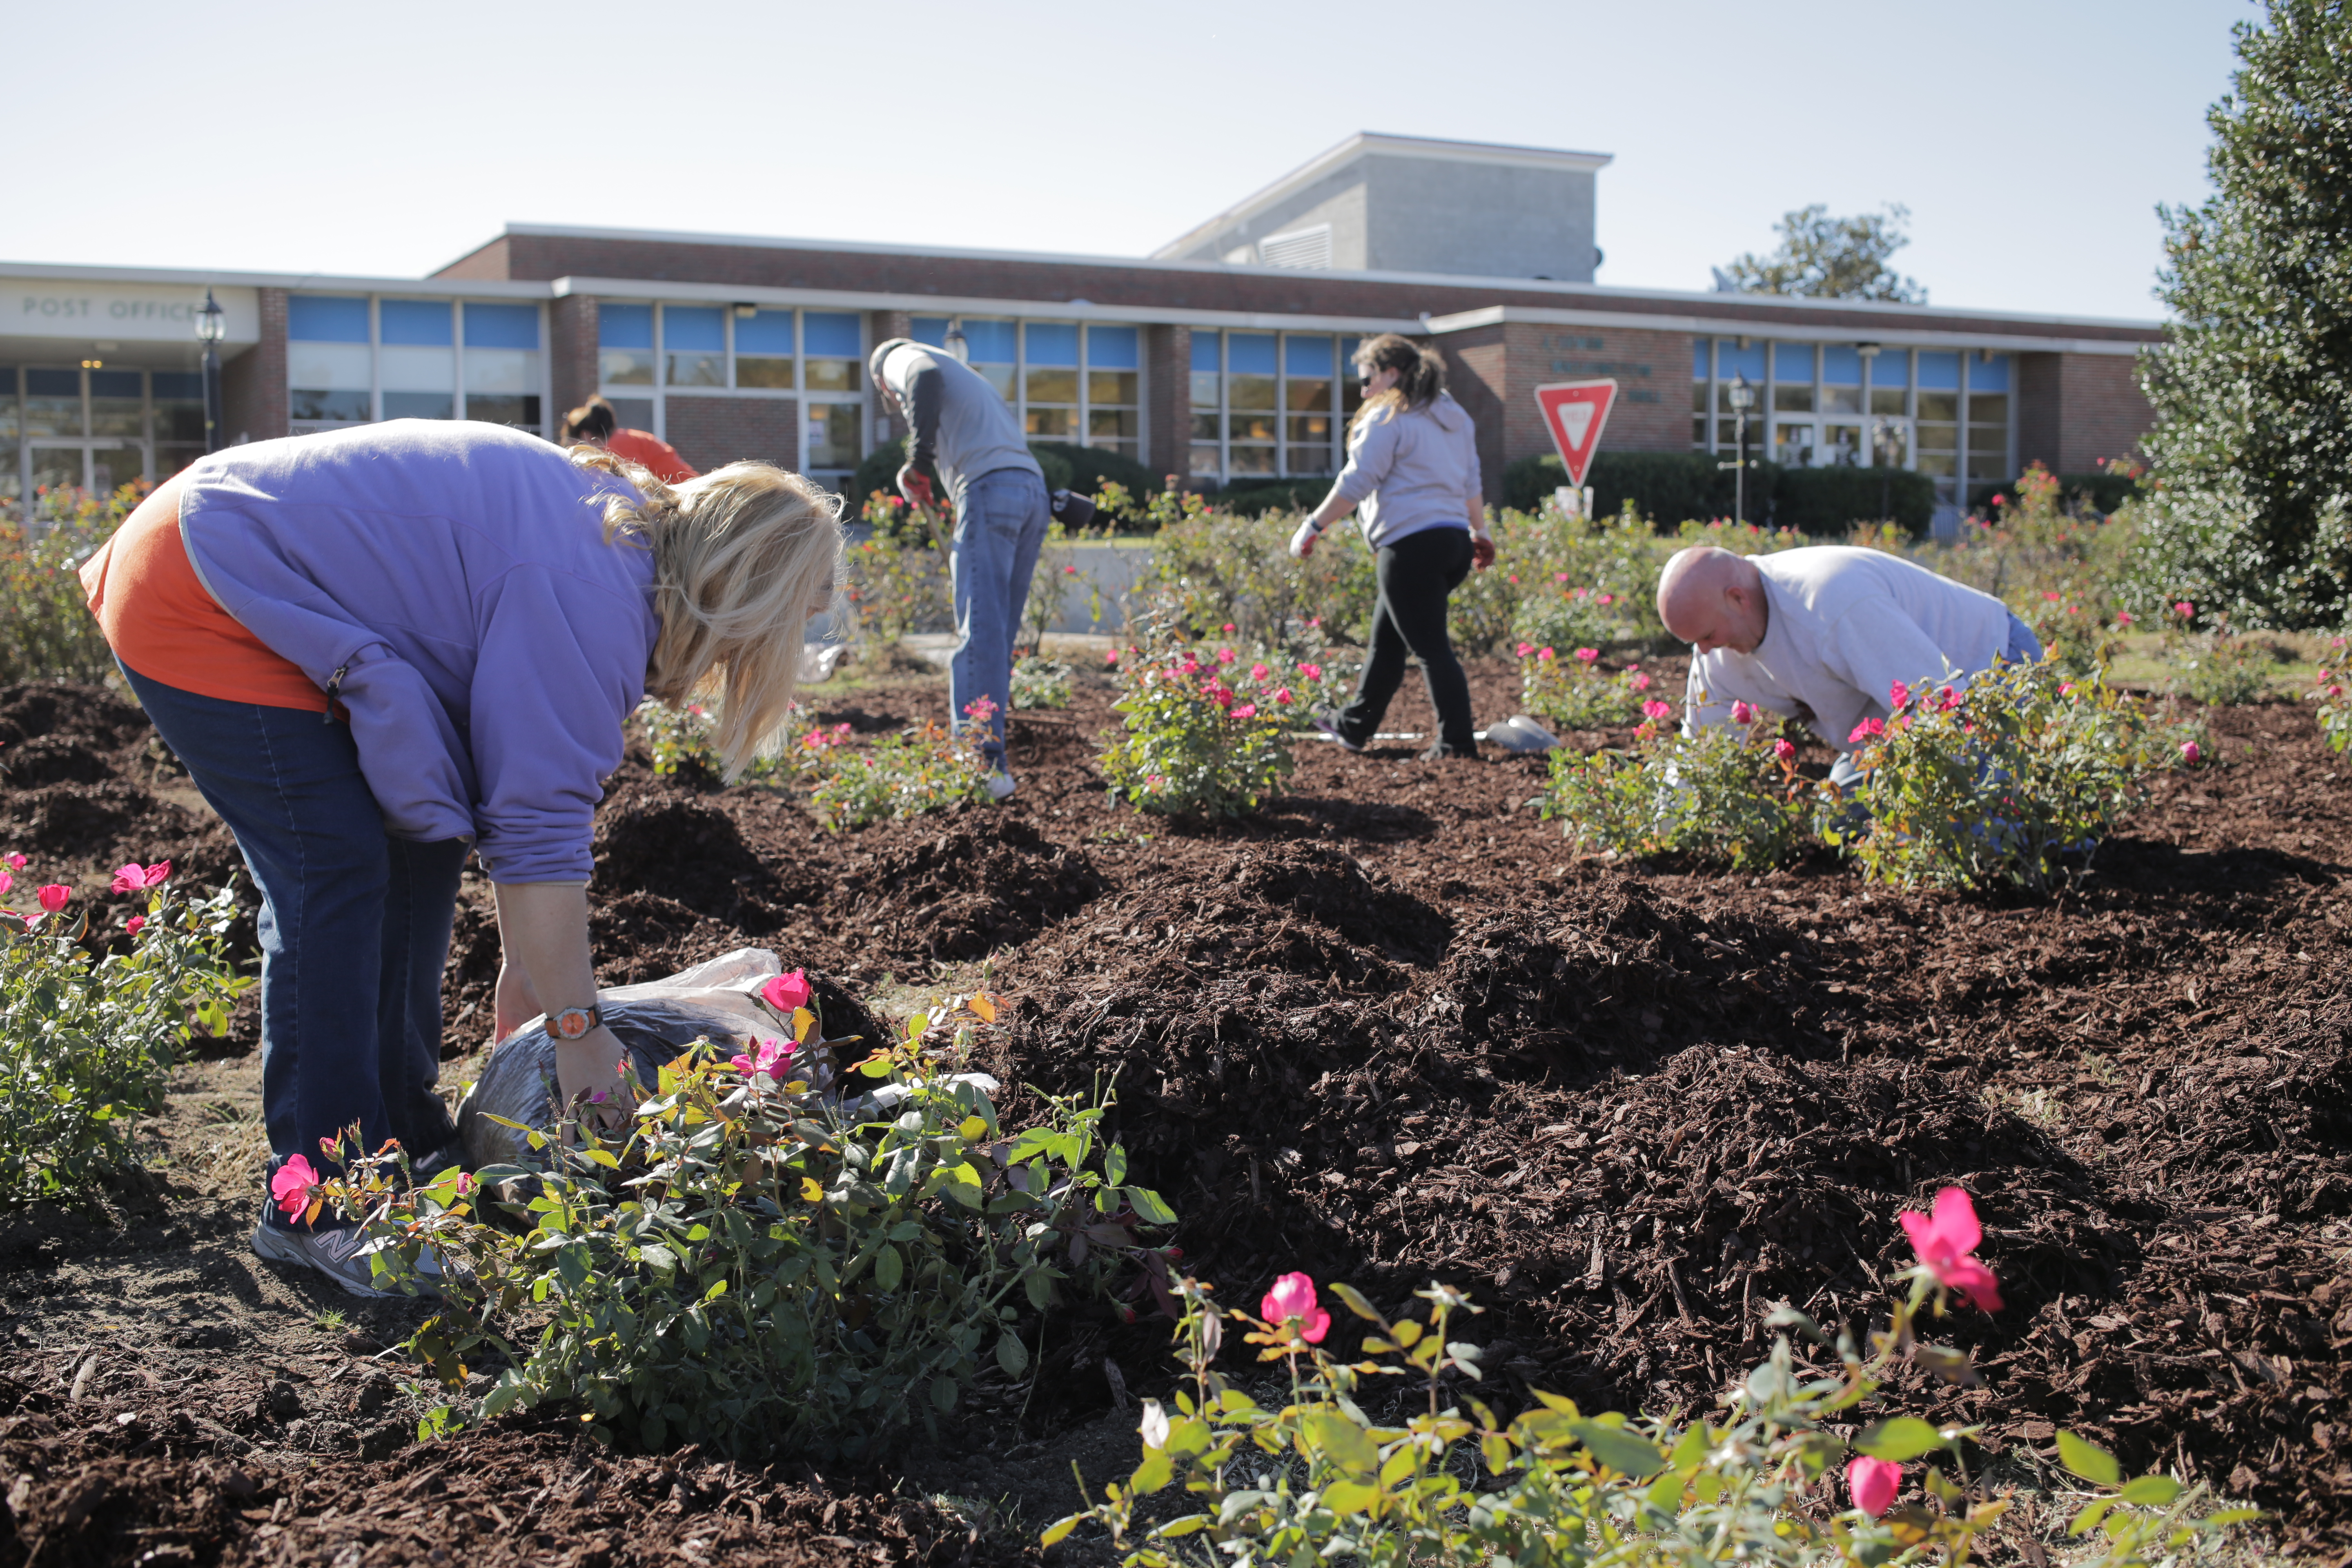 South Carolina State beautifies campus park with Retool Your School grant.